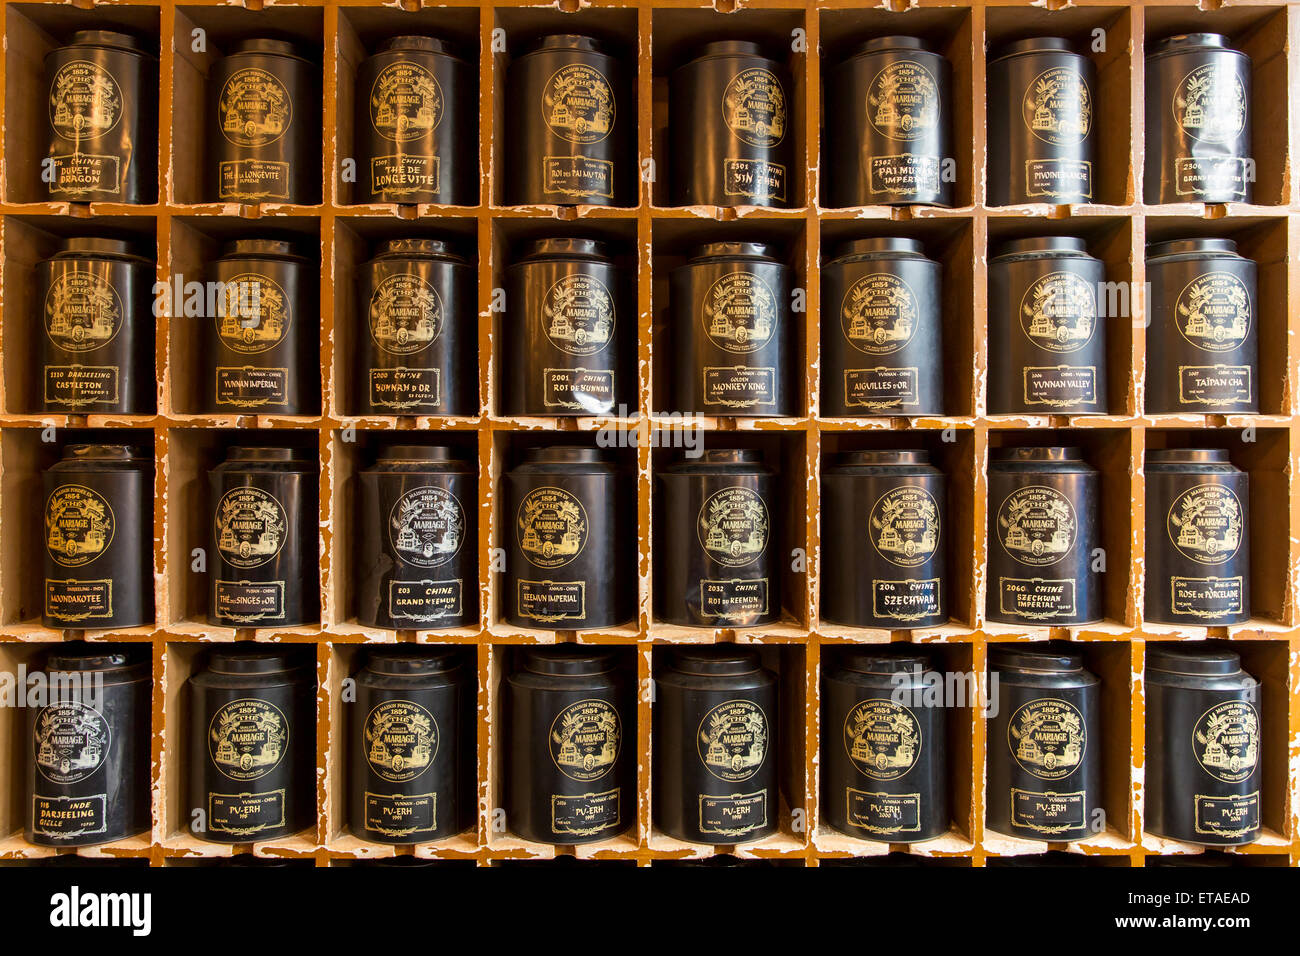 canisters of tea wall display at world famous mariage freres salon de the marais paris france - Mariages Freres